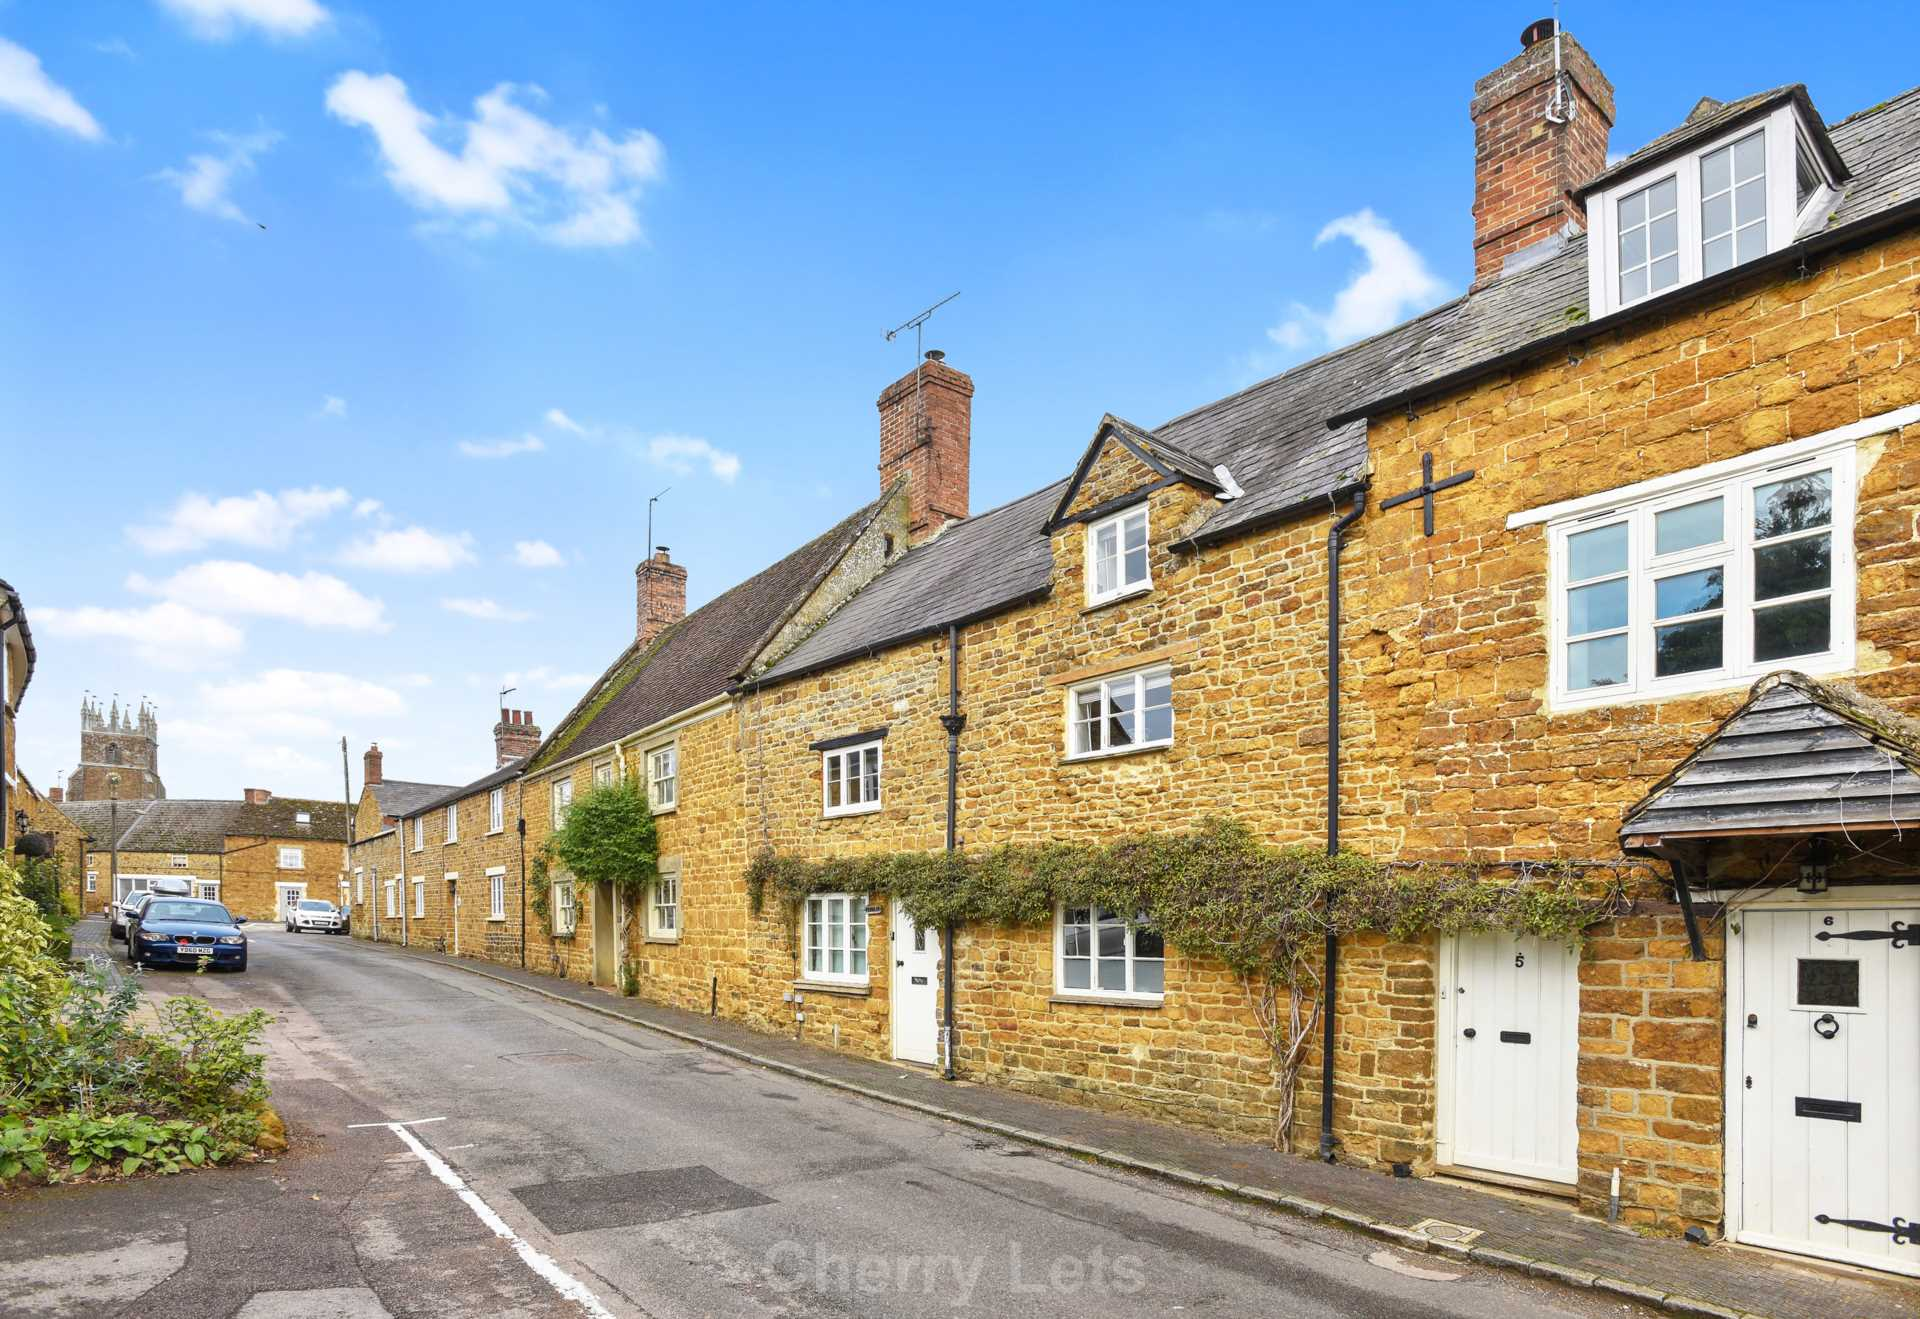 2 bed cottage to rent in Philcote Street, Deddington, Banbury 10